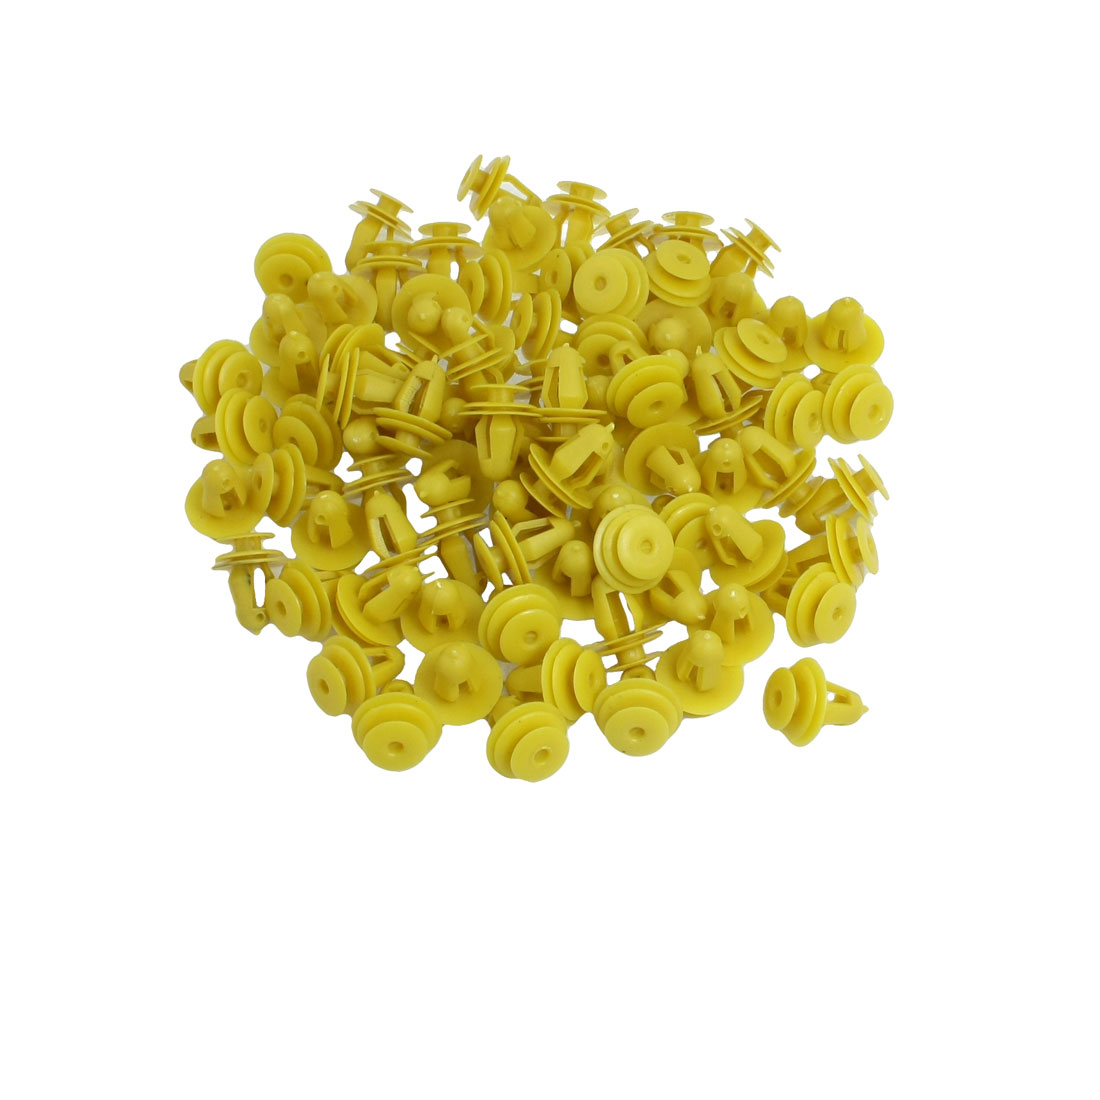 100 Pcs Car Door Trim Fender 10mm Hole Plastic Rivets Fastener Yellow